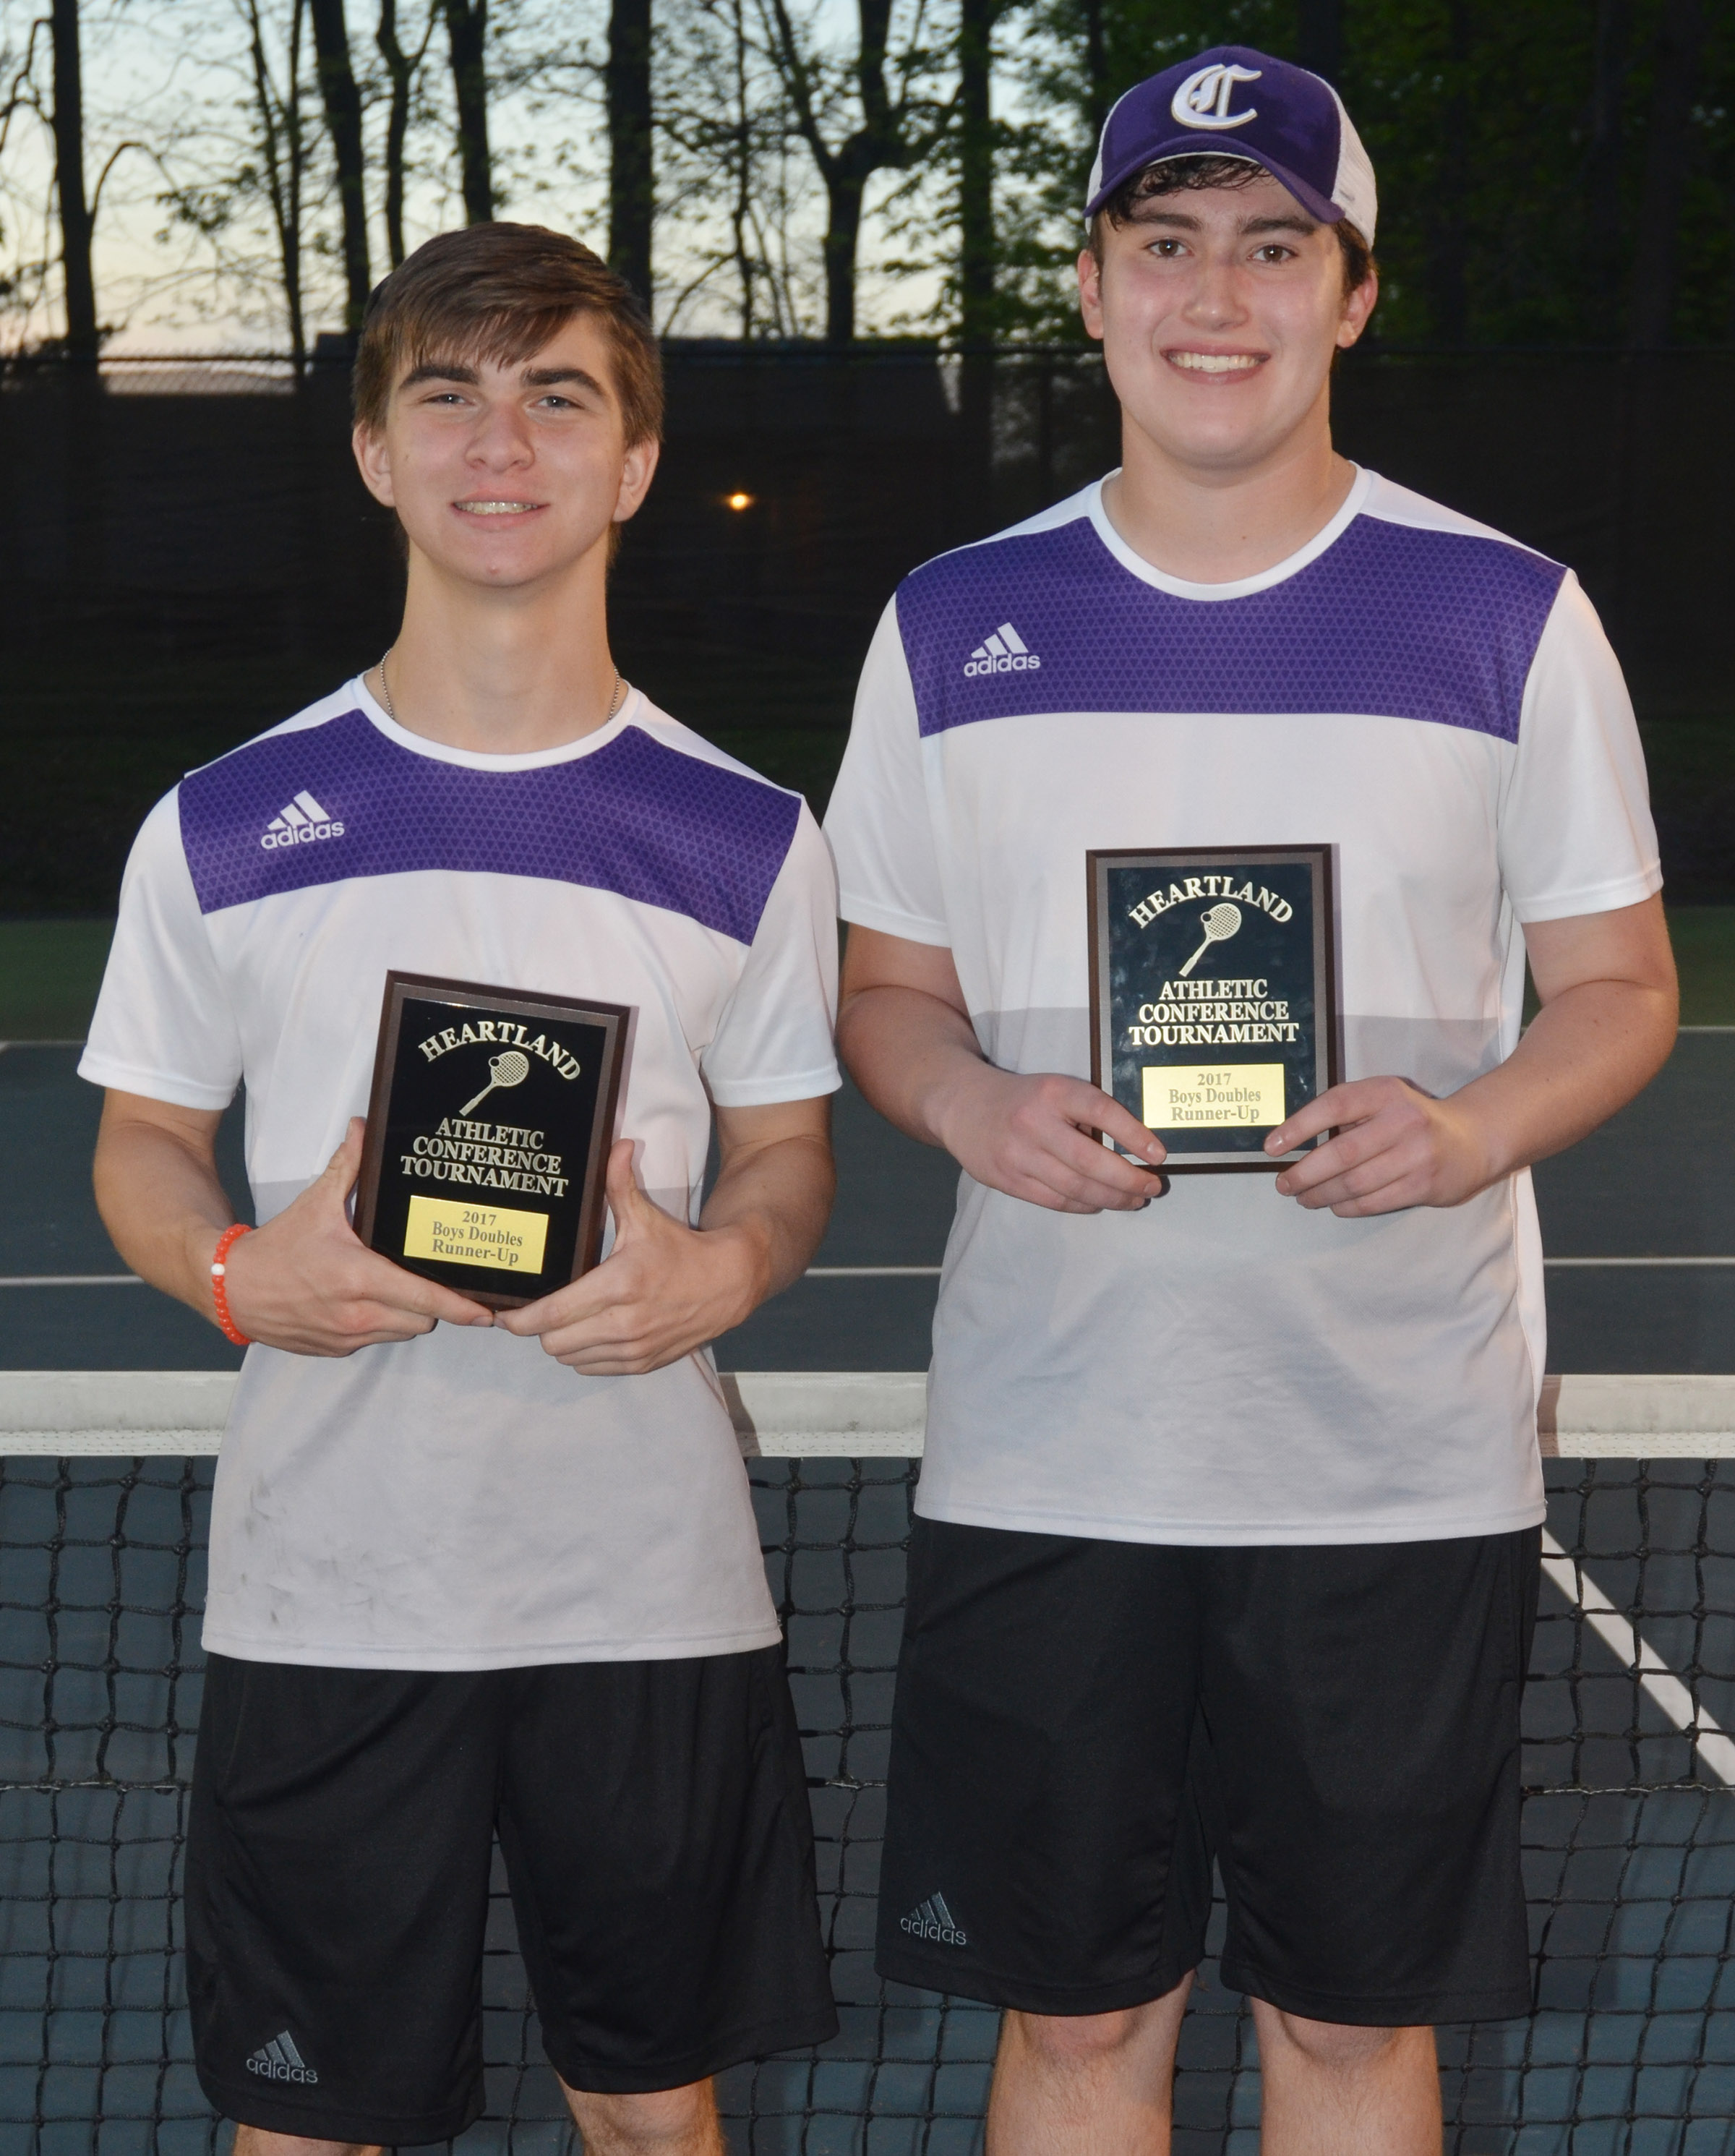 CHS senior Zack Settle, at right, and junior Cass Kidwell were this year's Heartland Conference doubles runners-up.